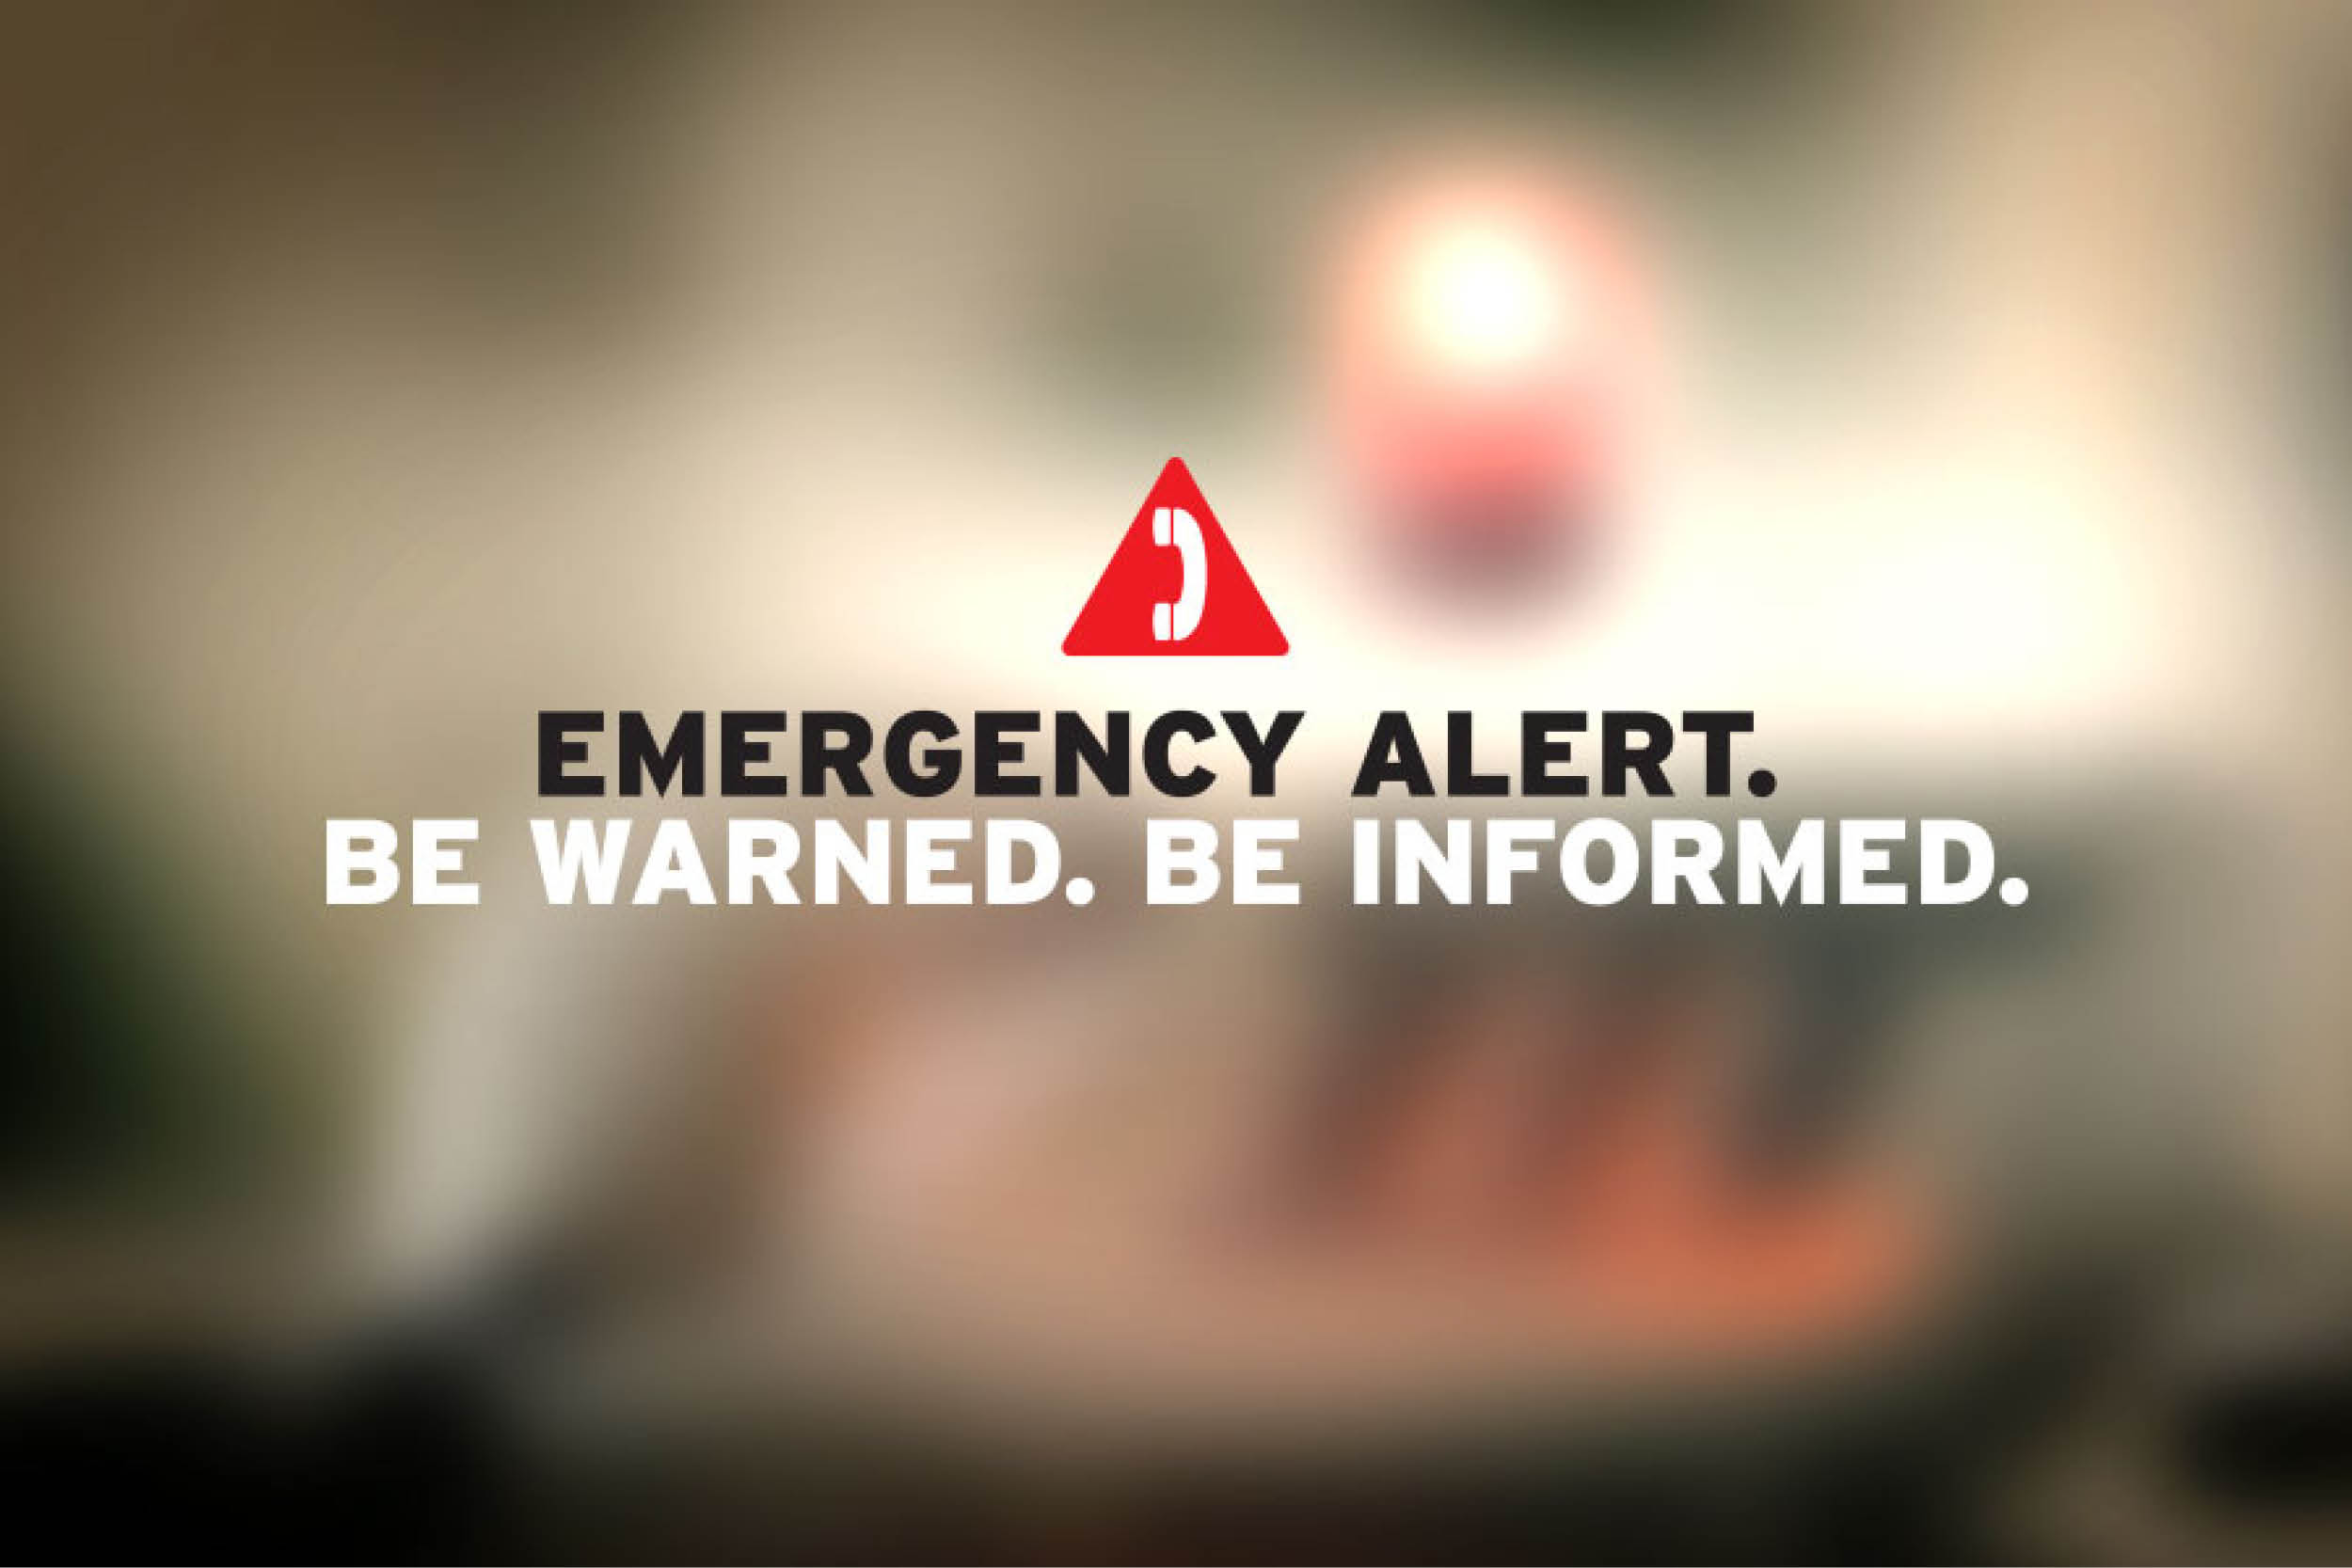 CC_036_FOLIO_IMAGES_EMERGENCY ALERT_1.jpg